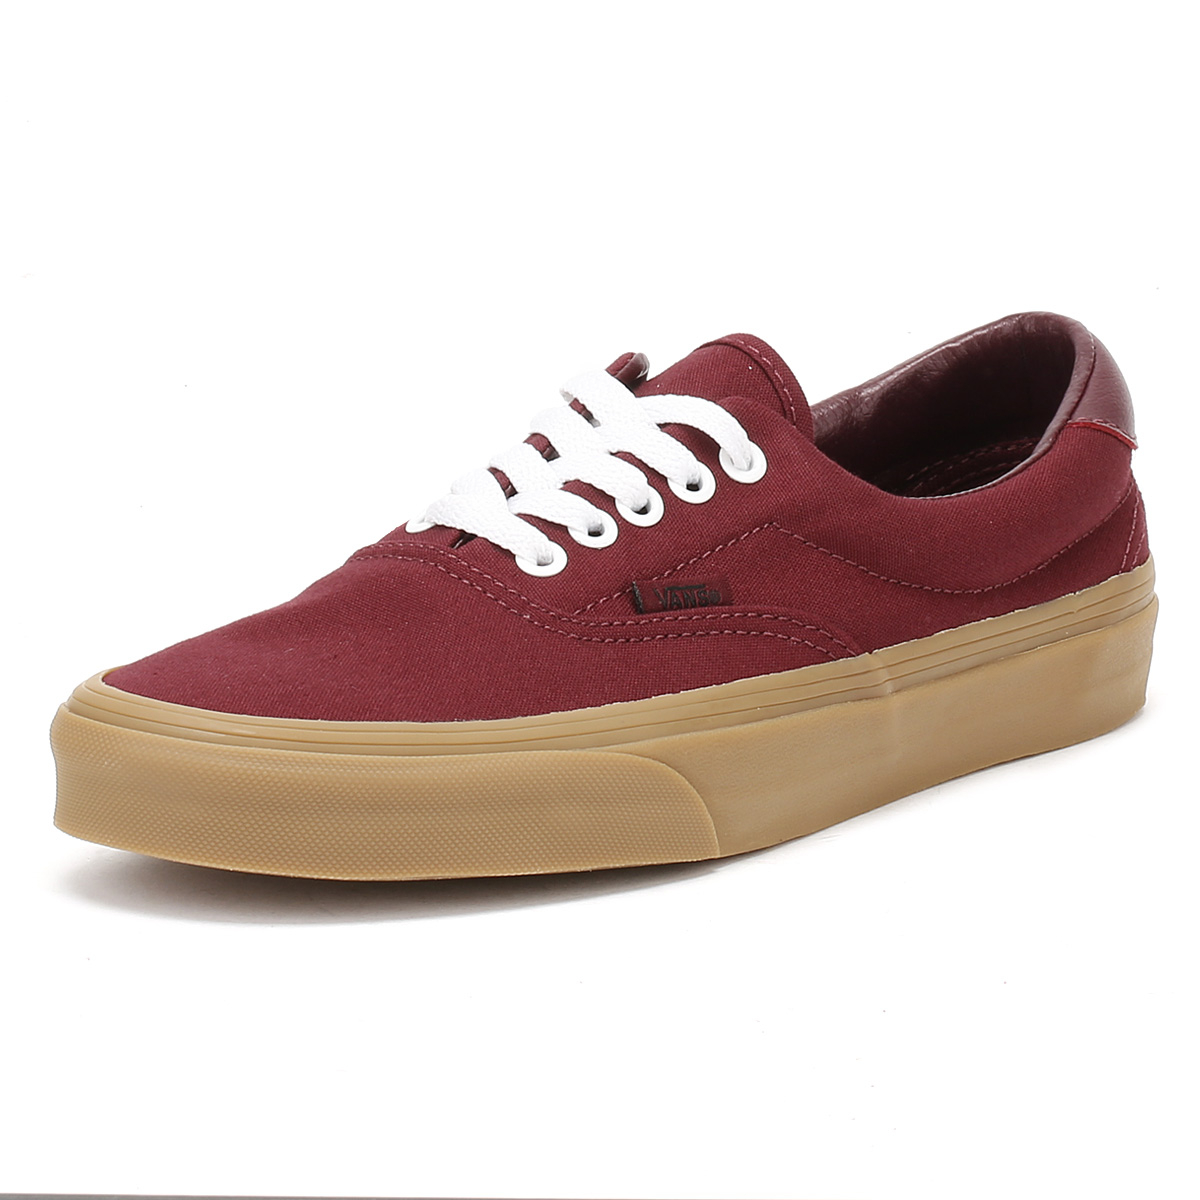 7528d13b471 Details about Vans Mens Trainers Port Royale Burgundy   Light Gum Canvas Era  59 Skate Shoes